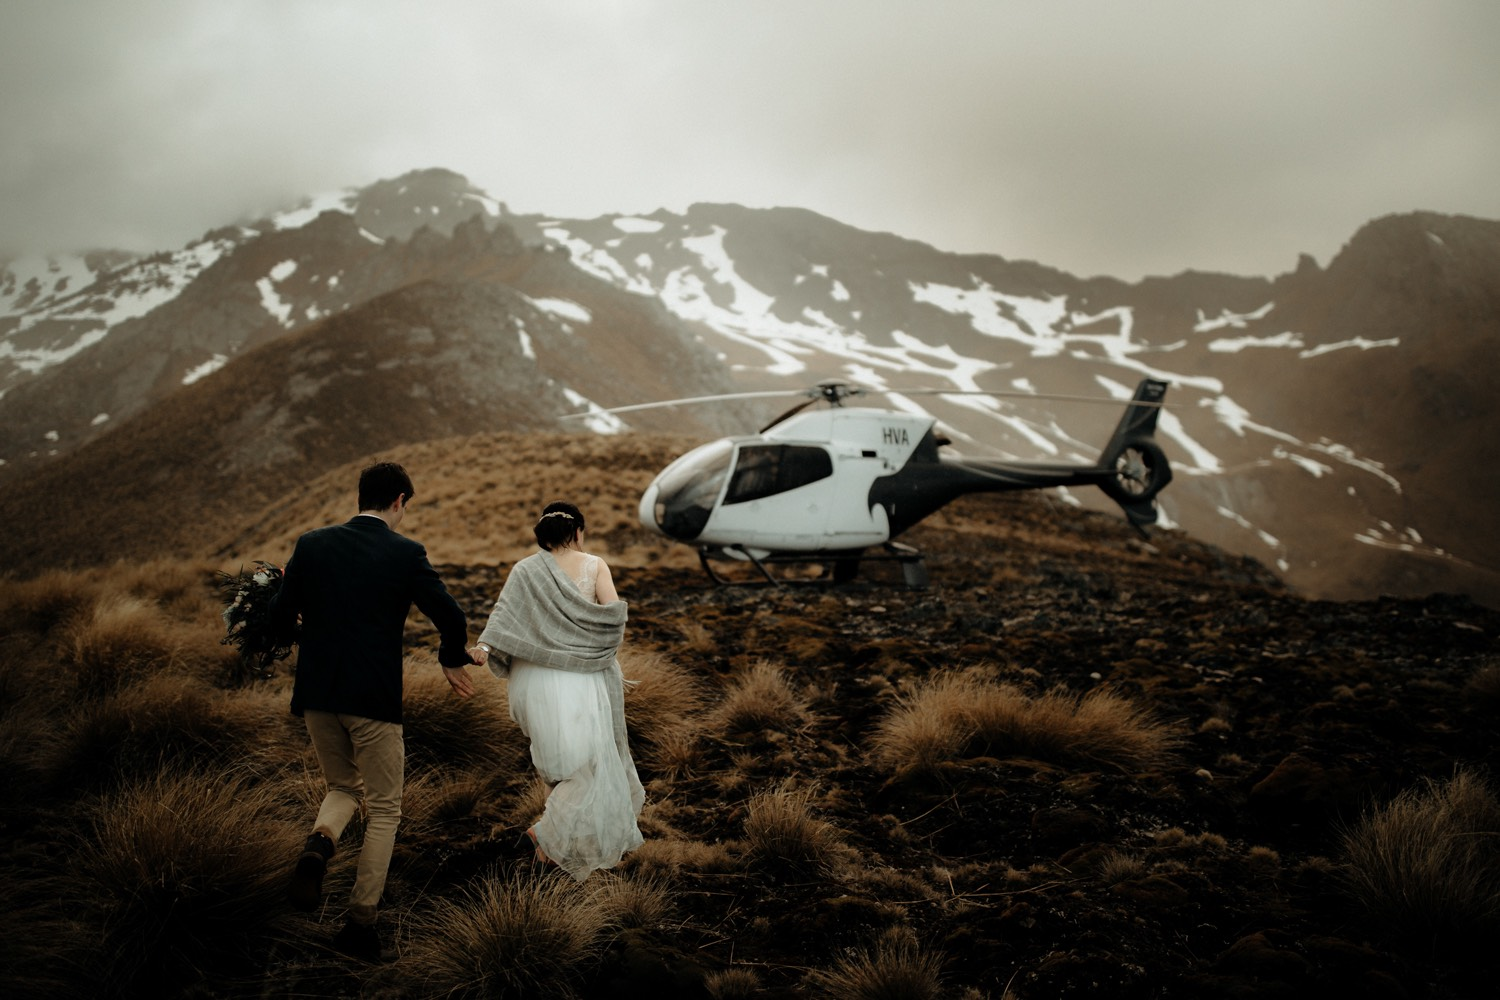 Pre-wedding photo taken by Chasewild Photography